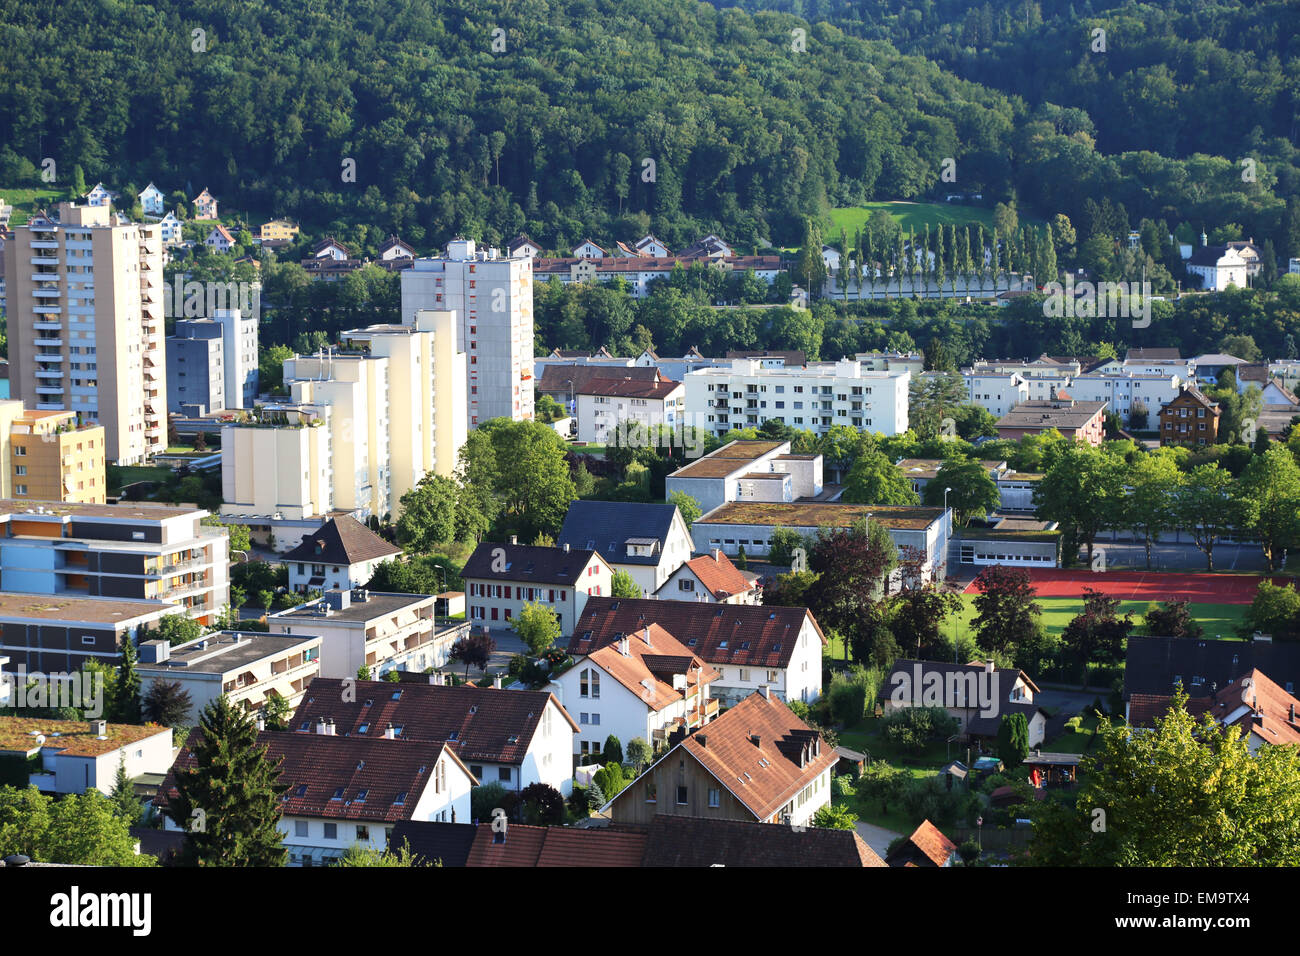 Houses and buildings in Baden, Switzerland Stock Photo